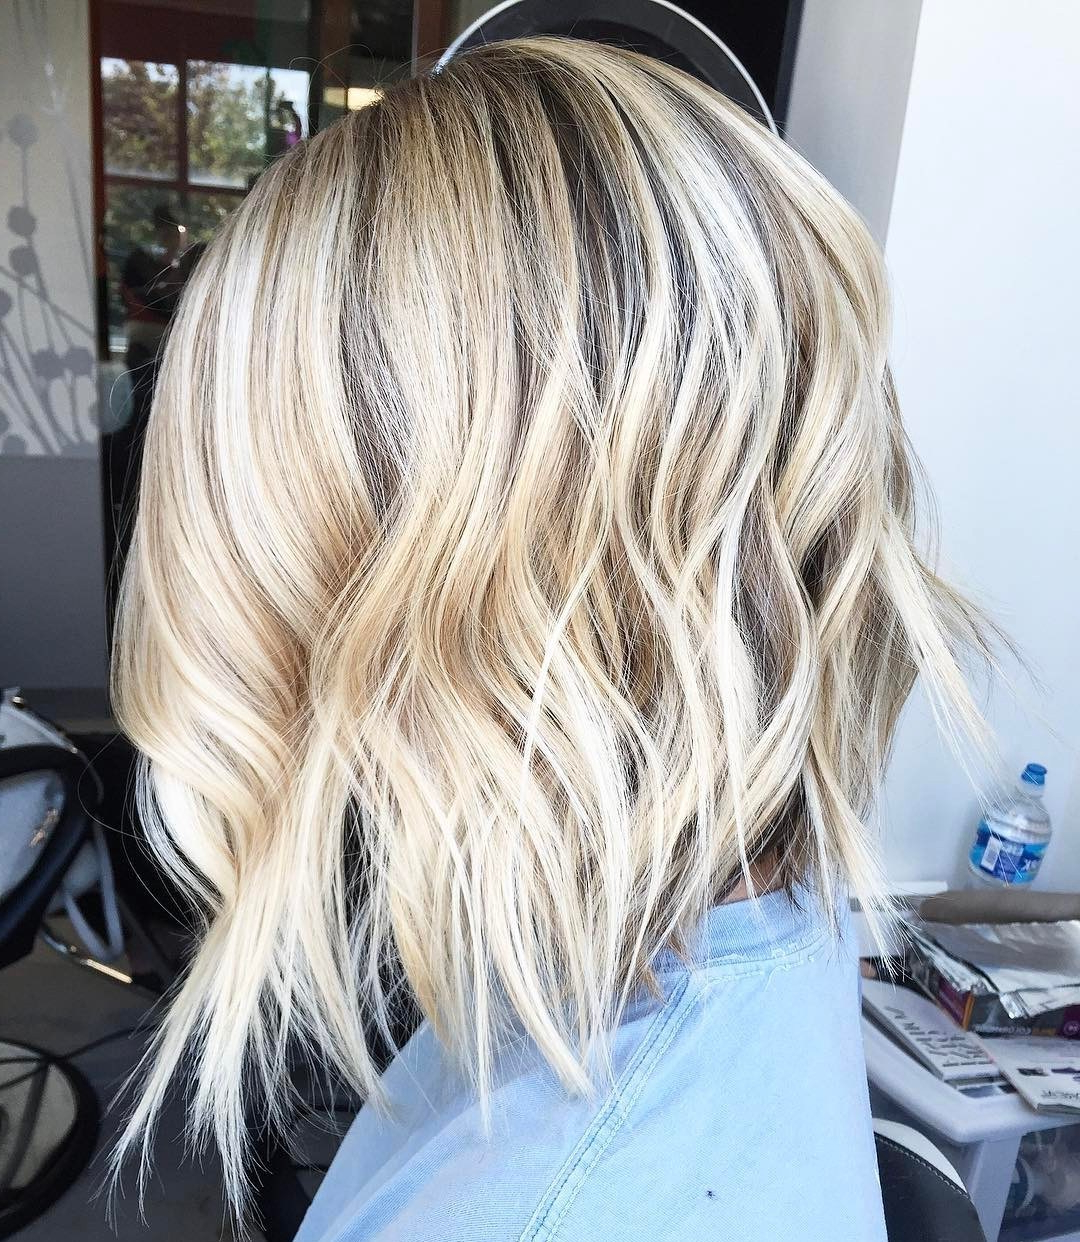 50 Bob Hairstyles For Fine Hair That Really Look Fuller With Most Recent Choppy Bright Blonde Bob Hairstyles (View 11 of 20)